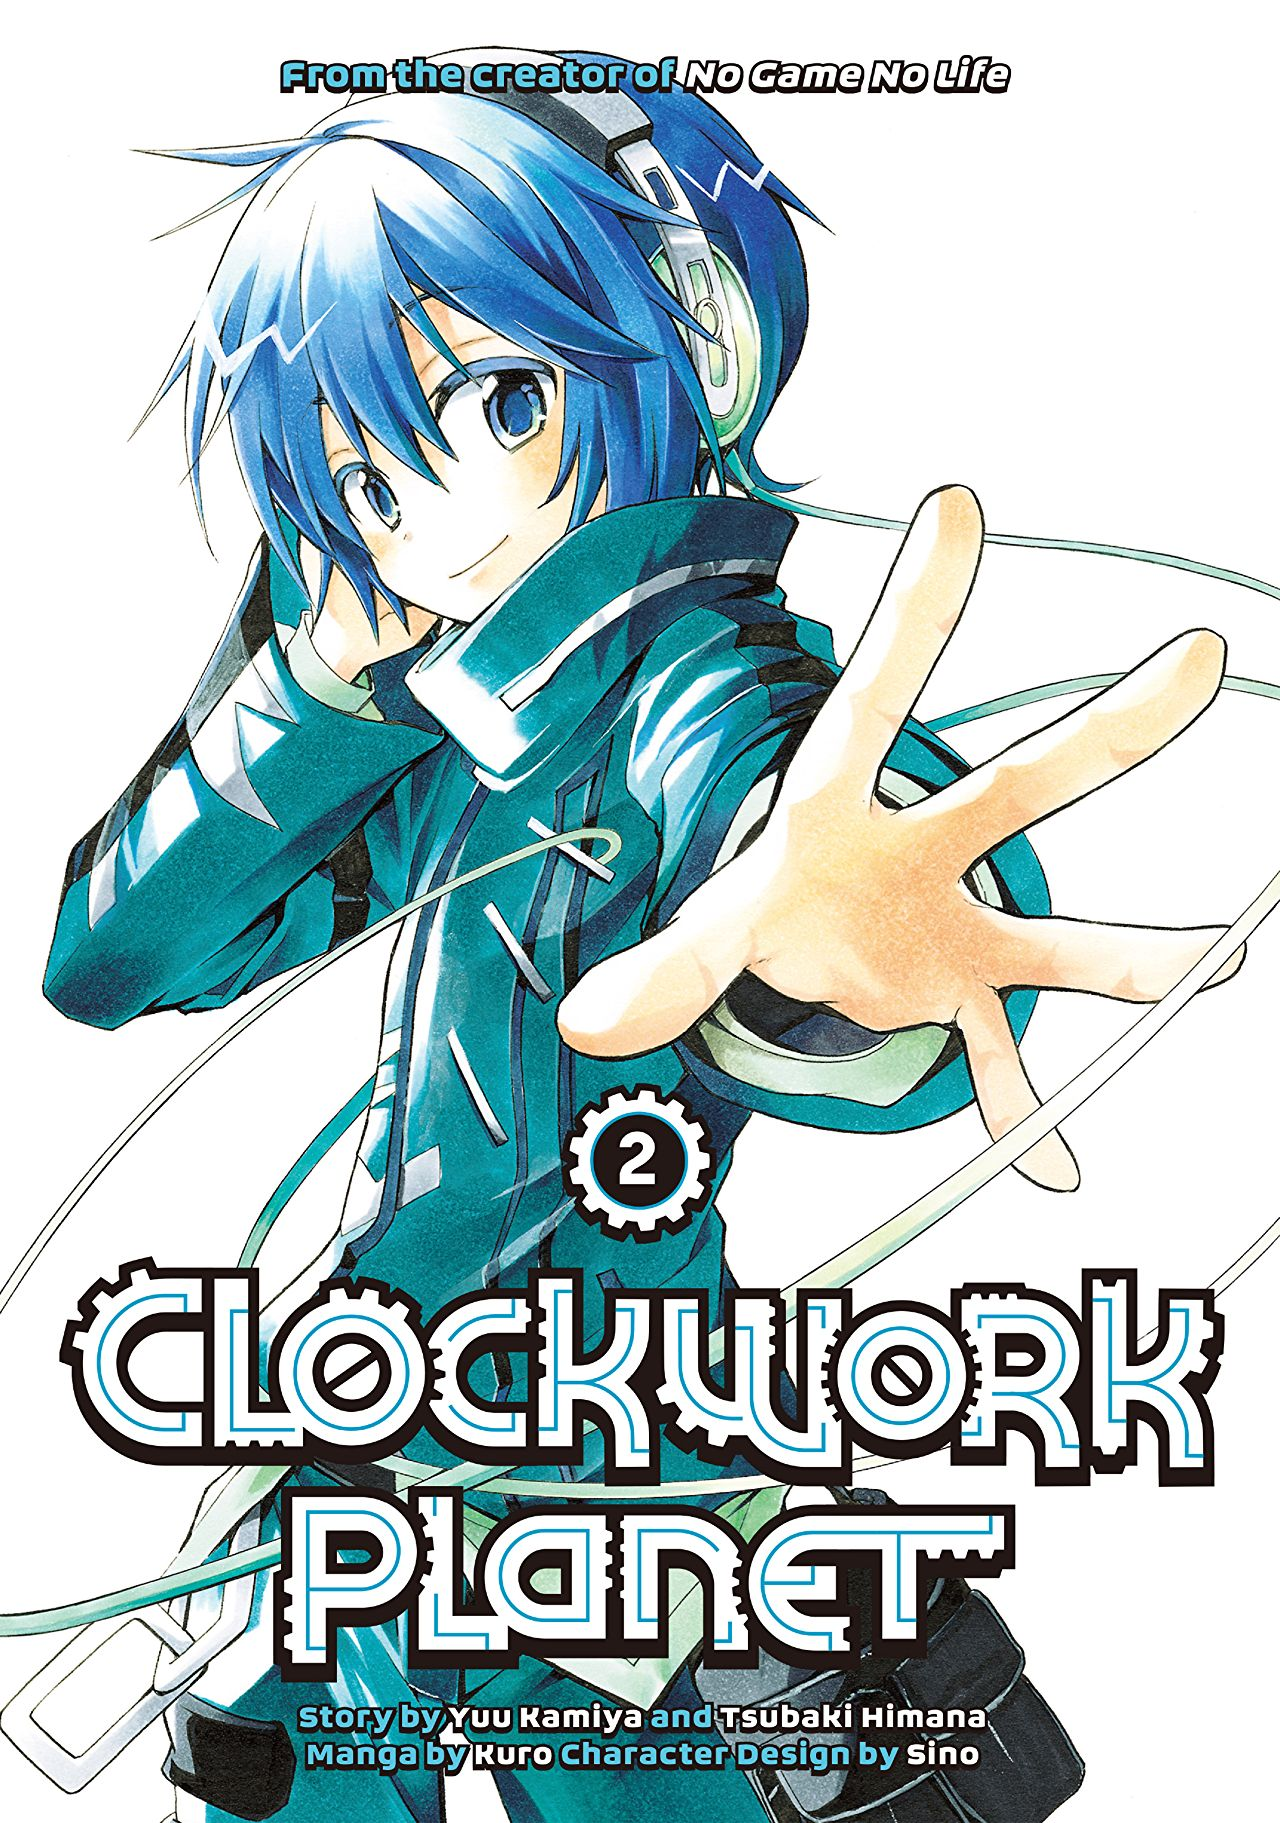 Clockwork Planet Vol. 3 Review